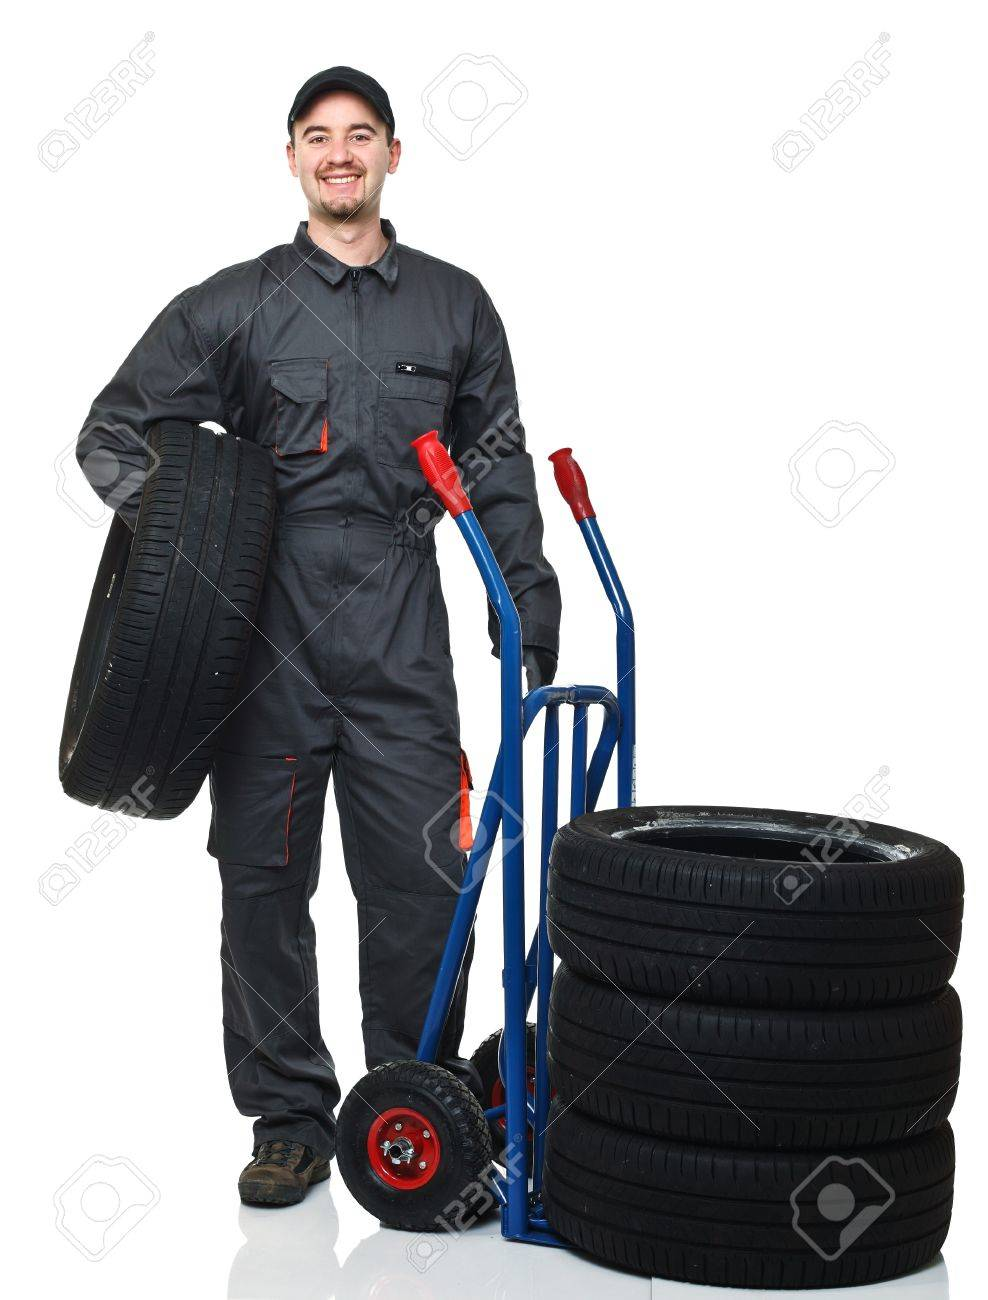 man with garage suit and tires on white background Stock Photo - 8815369